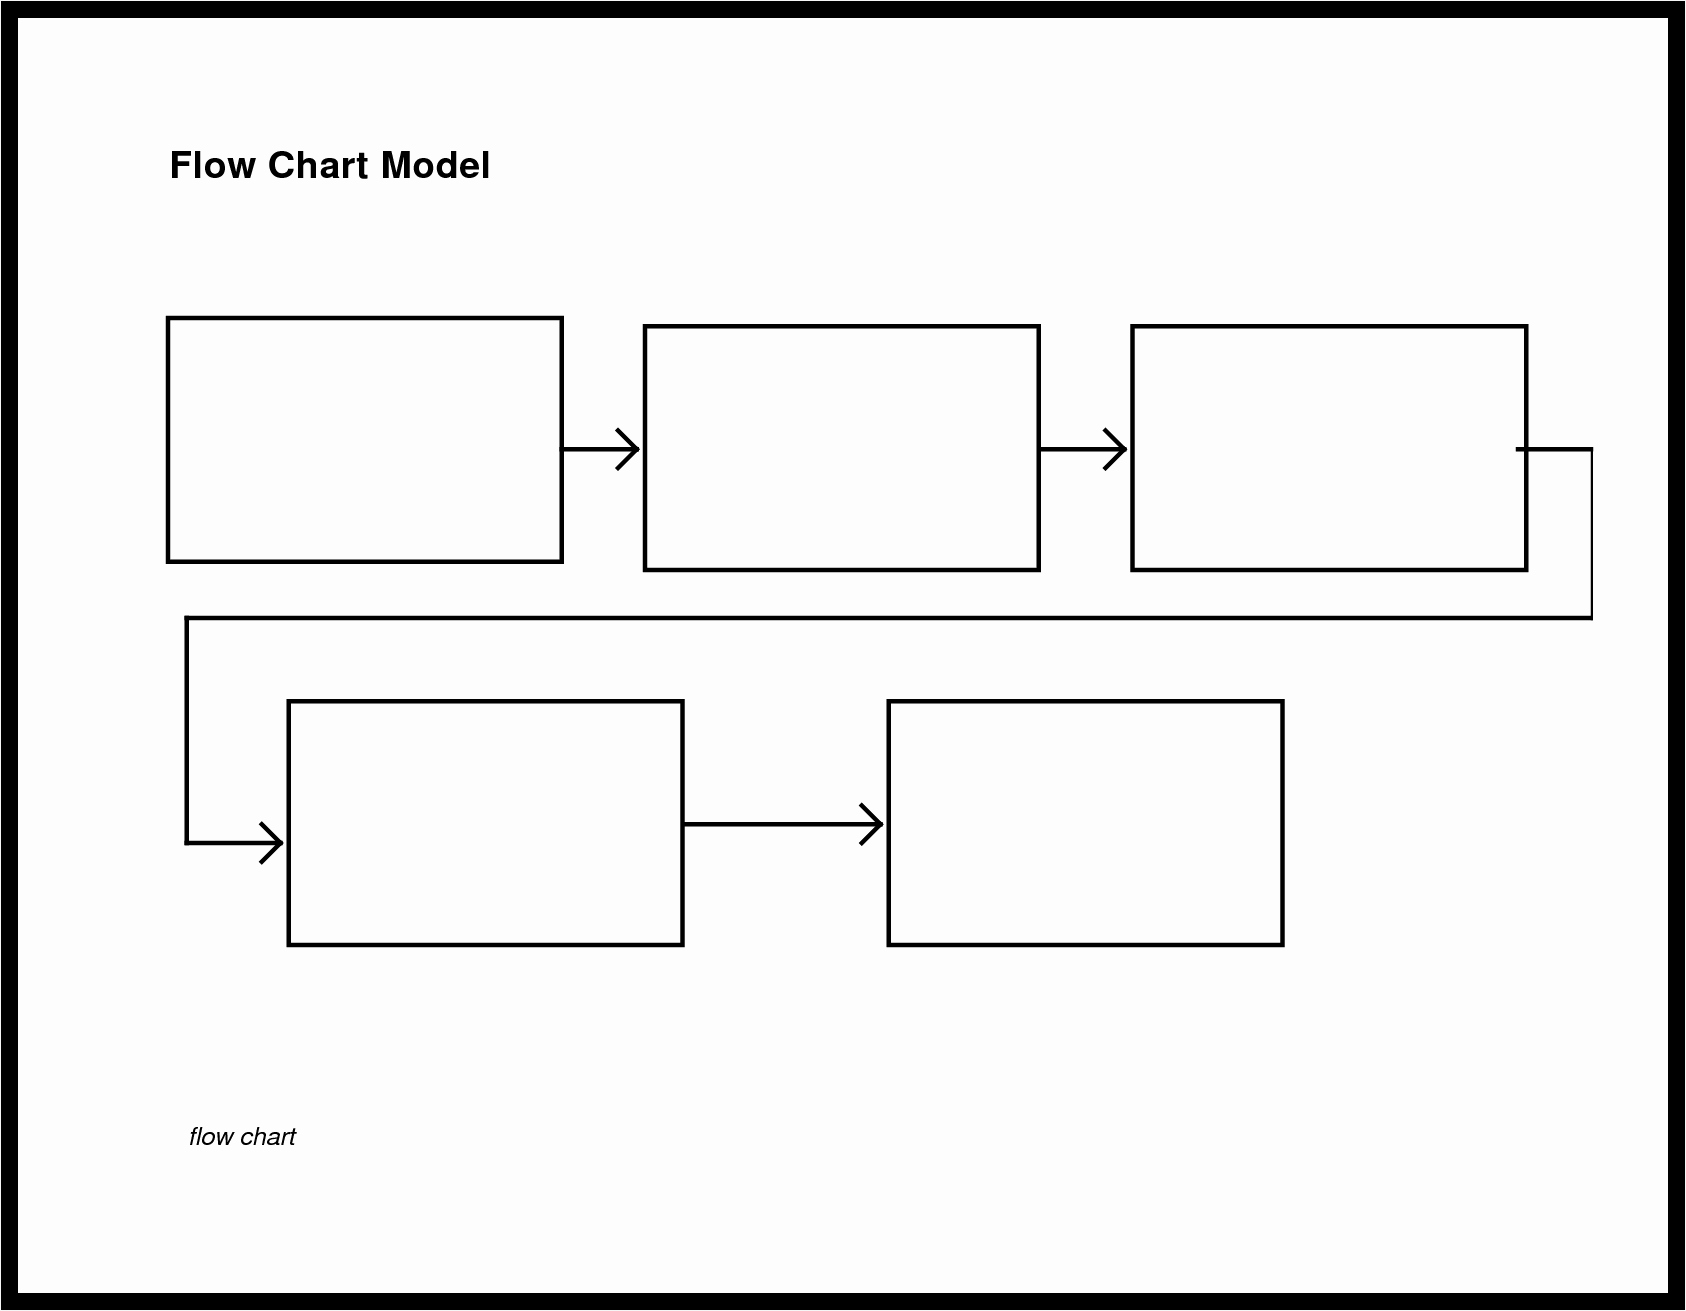 Blank Flowchart Template Lovely Flow Chart Template for Kids Shopgrat Basic Sample